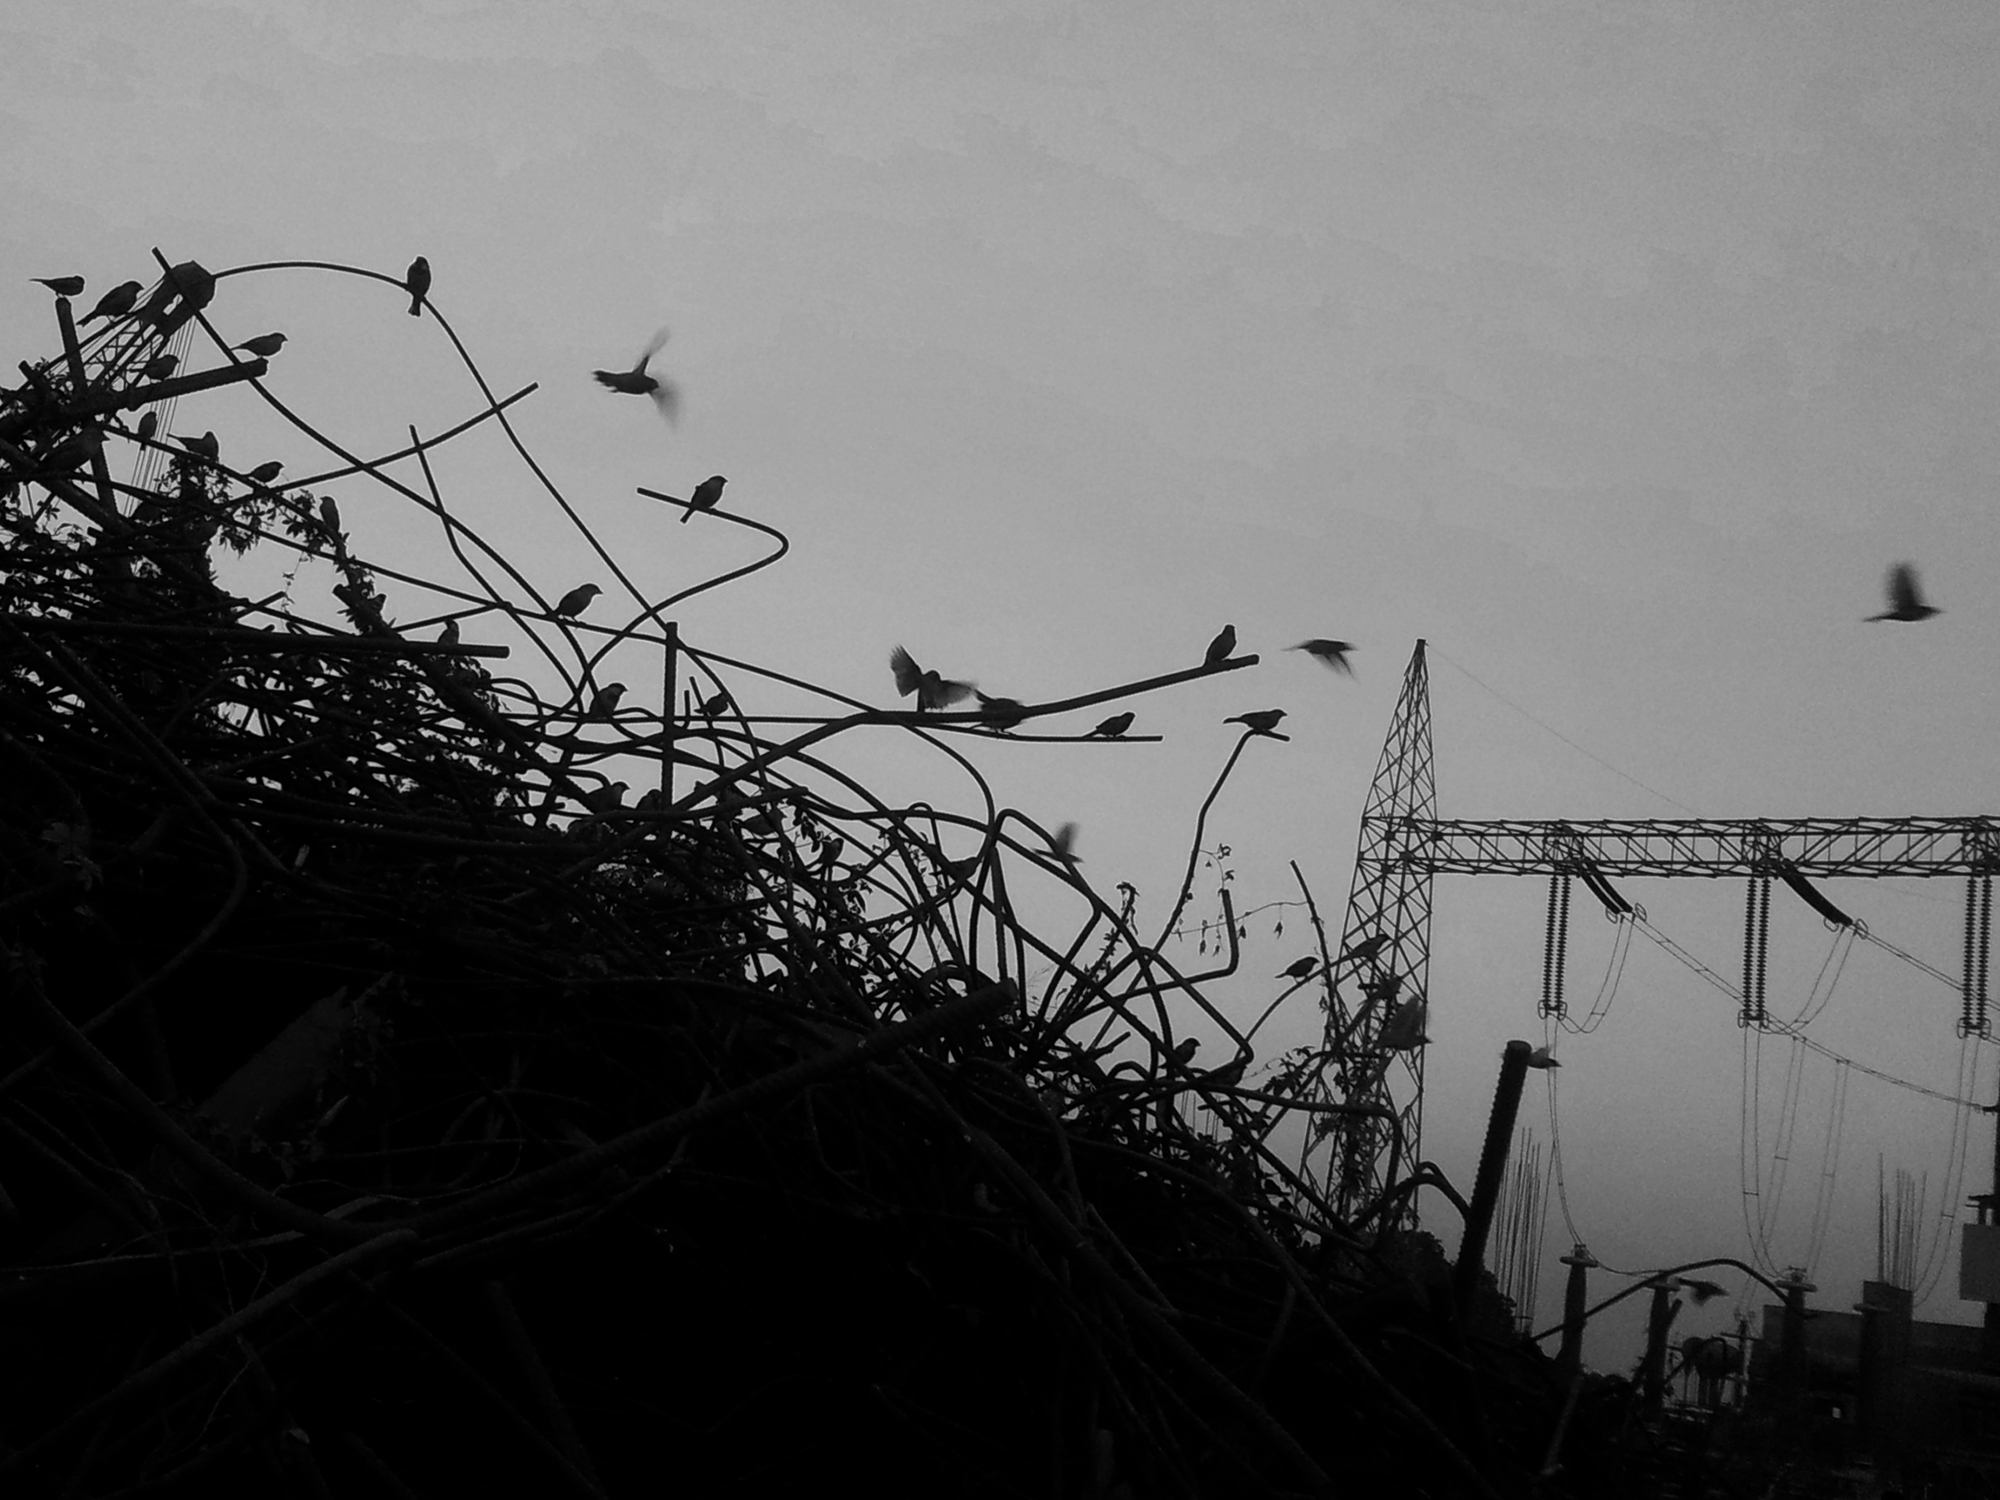 This shot was taken near a heap of scrap TMT bars where lots of sparrows were sitting.It felt really great to see sparrows but at the same time it was painful to see them resting on steel bars instead of tree branches.This shows the industrial growth with deterioration of environment